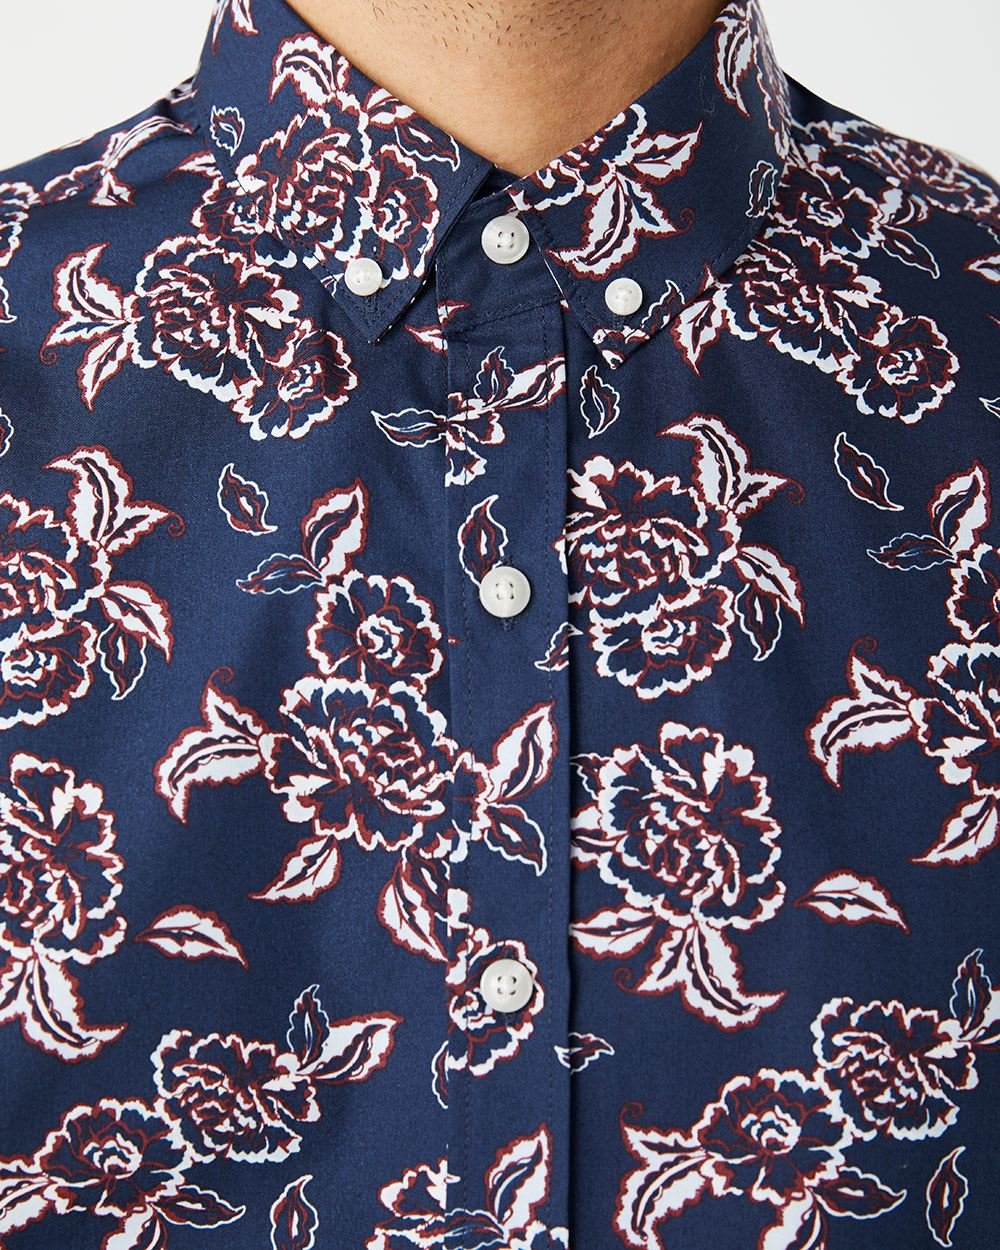 Athletic fit short sleeve large floral shirt